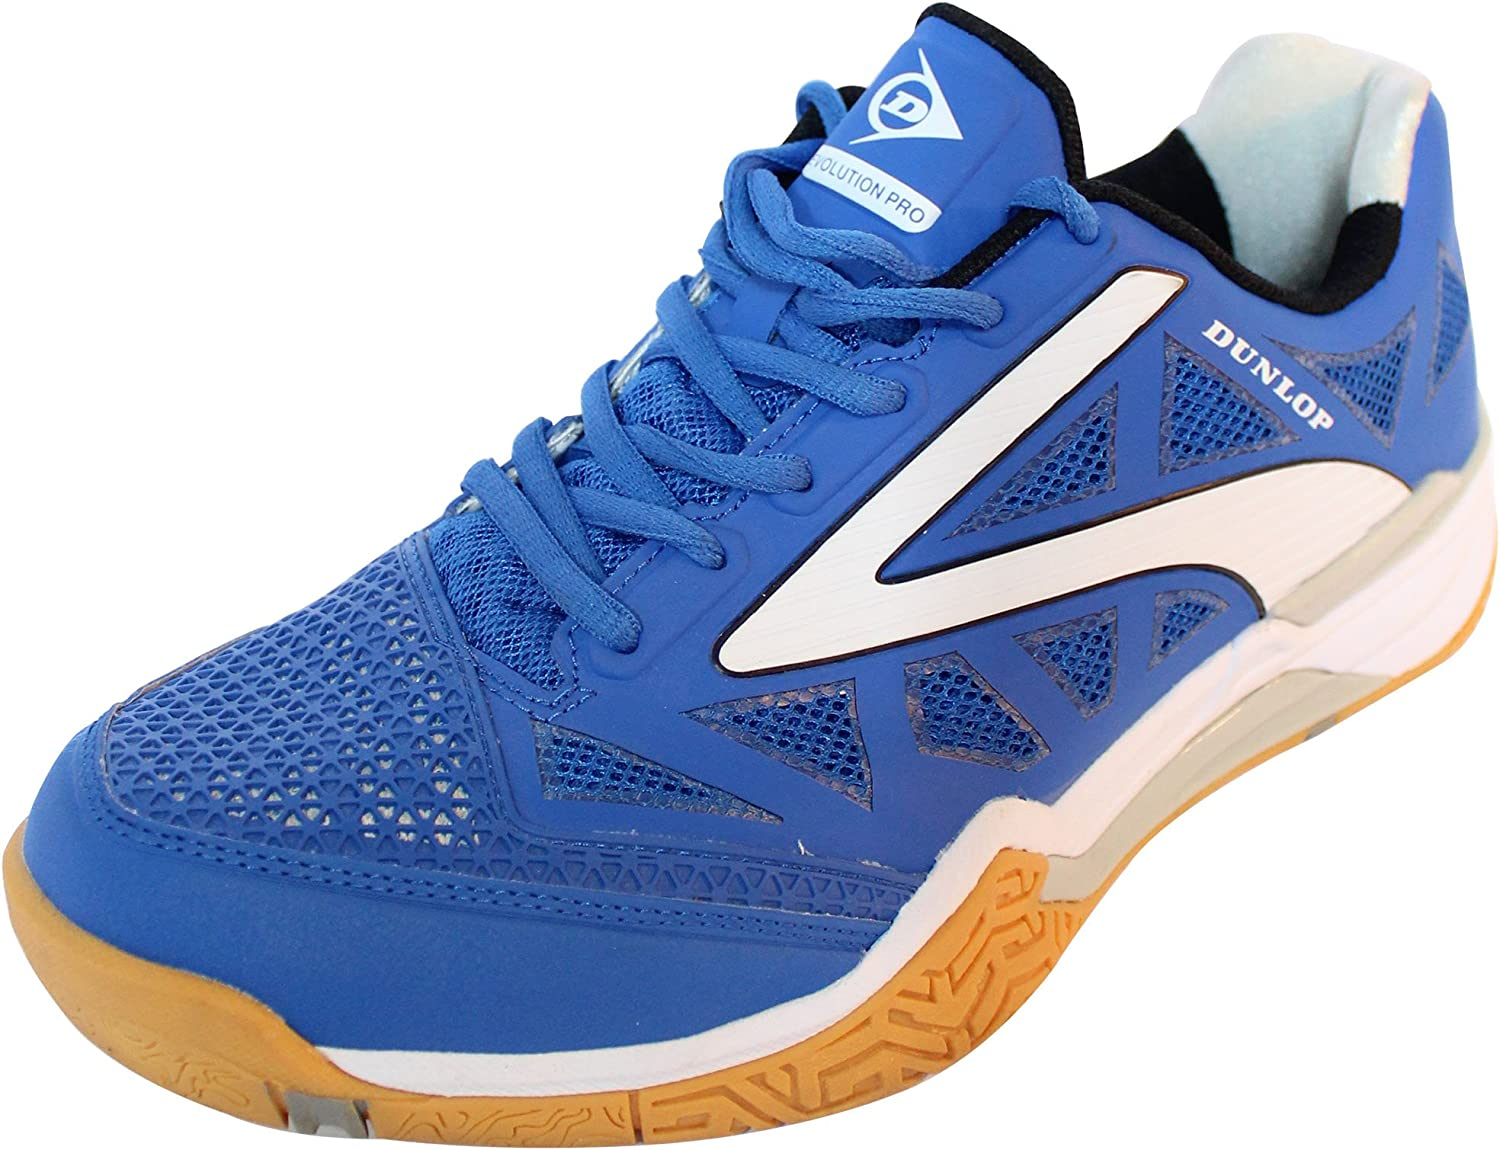 DUNLOP Evolution Pro Indoor Court shoes